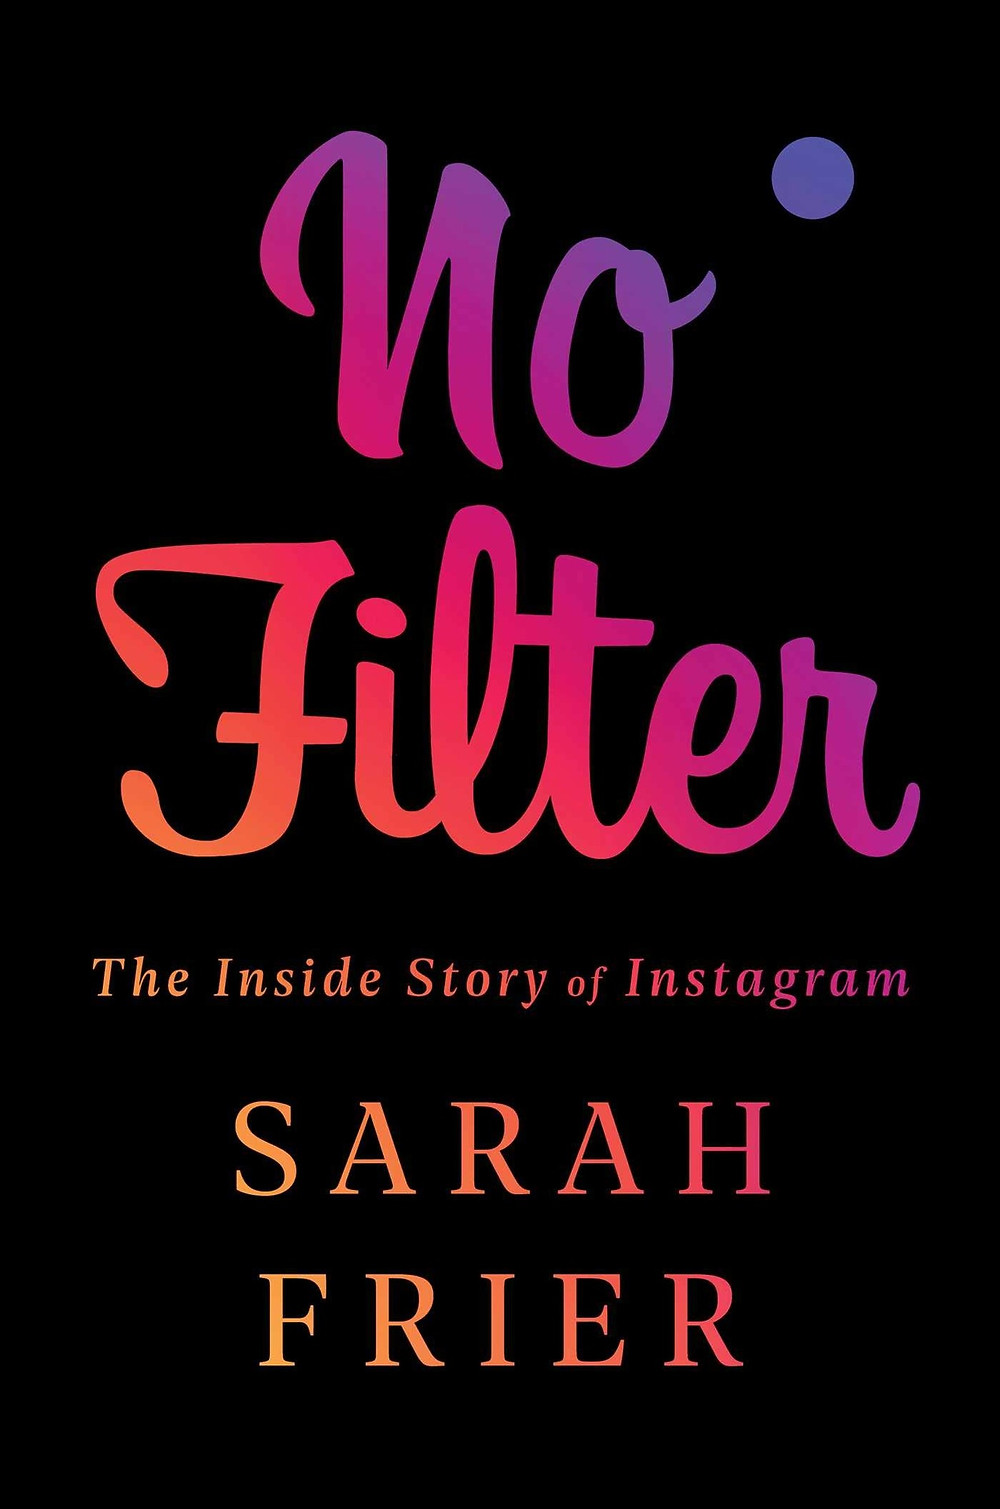 "No Filter: The Inside Story of Instagram by Sarah Frier (Author). The Book Slut book reviews, thebookslut Friday debrief ""A sequel to The Social Network"" --The New York Times ""Deeply reported and beautifully written"" --Nick Bilton, Vanity Fair reporter Award-winning reporter Sarah Frier reveals the never-before-told story of how Instagram became the most culturally defining app of the decade. In 2010, Kevin Systrom and Mike Krieger released a photo-sharing app called Instagram, with one simple but irresistible feature: it would make anything you captured through your phone look more beautiful. The cofounders started to cultivate a community of photographers and artisans around the app, but it quickly went mainstream. In less than two years, it caught Facebook's attention: Mark Zuckerberg bought the company for a historic $1 billion when Instagram was just 13 employees. That might have been the end of a classic success story. But the cofounders stayed on, trying to maintain Instagram's beauty, brand, and cachet, considering their app a separate company within the social networking giant. They urged their employees to make changes only when necessary, resisting Facebook's grow-at-all-costs philosophy in favor of a strategy that highlighted creativity and celebrity. Just as Instagram was about to reach 1 billion users, Facebook's CEO Mark Zuckerberg--once supportive of the founders' autonomy--began to feel threatened by Instagram's success. At its heart, No Filter is a human story, as Sarah Frier uncovers how the company's decisions have fundamentally changed how we interact with the world around us. Frier draws on unprecedented exclusive access--from the founders of Instagram, as well as employees, executives, and competitors; Anna Wintour of Vogue; Kris Jenner of the Kardashian-Jenner empire; and a plethora of influencers, from fashionistas with millions of followers to owners of famous dogs worldwide--to show how Instagram has fundamentally changed the way we shop, eat, travel, and communicate, all while fighting to preserve the values which contributed to the company's success. No Filter examines how Instagram's dominance acts as lens into our society today, highlighting our fraught relationship with technology, our desire for perfection, and the battle within tech for its most valuable commodity: our attention. Product Details Price $28.00  $25.76 Publisher Simon & Schuster Publish Date April 14, 2020 Pages 352 Dimensions 6.3 X 1.2 X 9.3 inches 